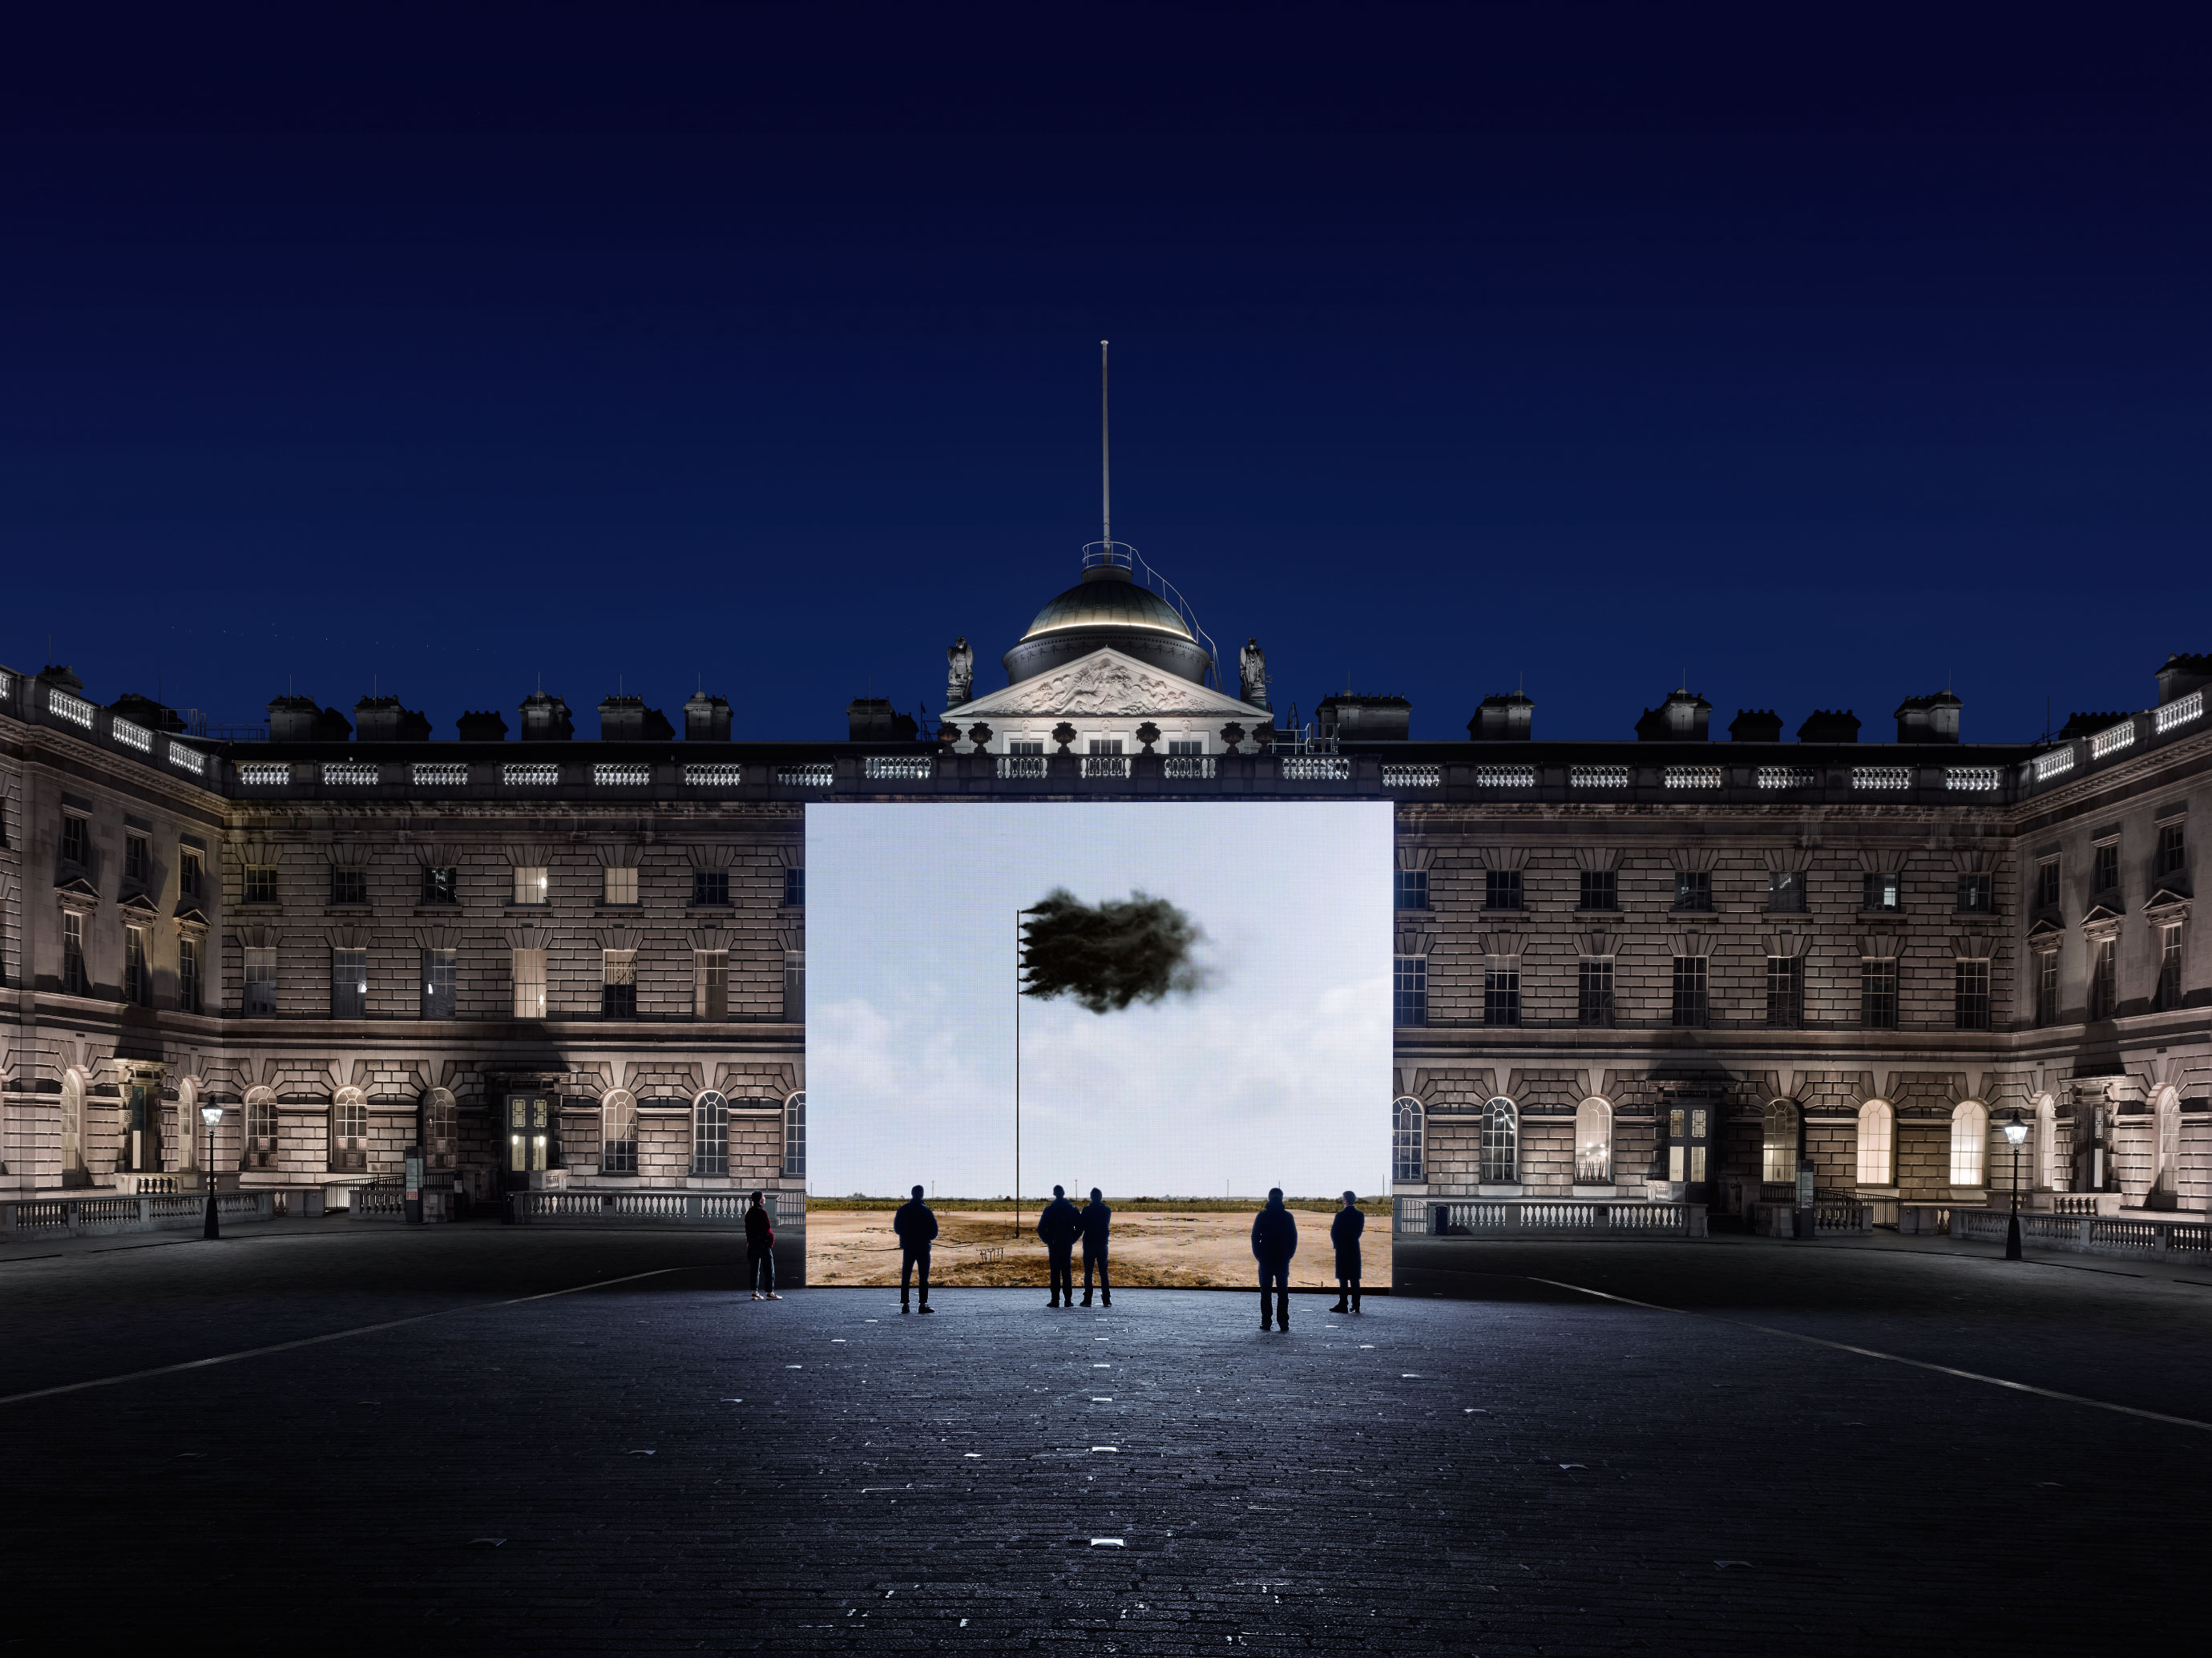 2017 · WESTERN FLAG / SOMERSET HOUSE, LONDON © Will Pryce